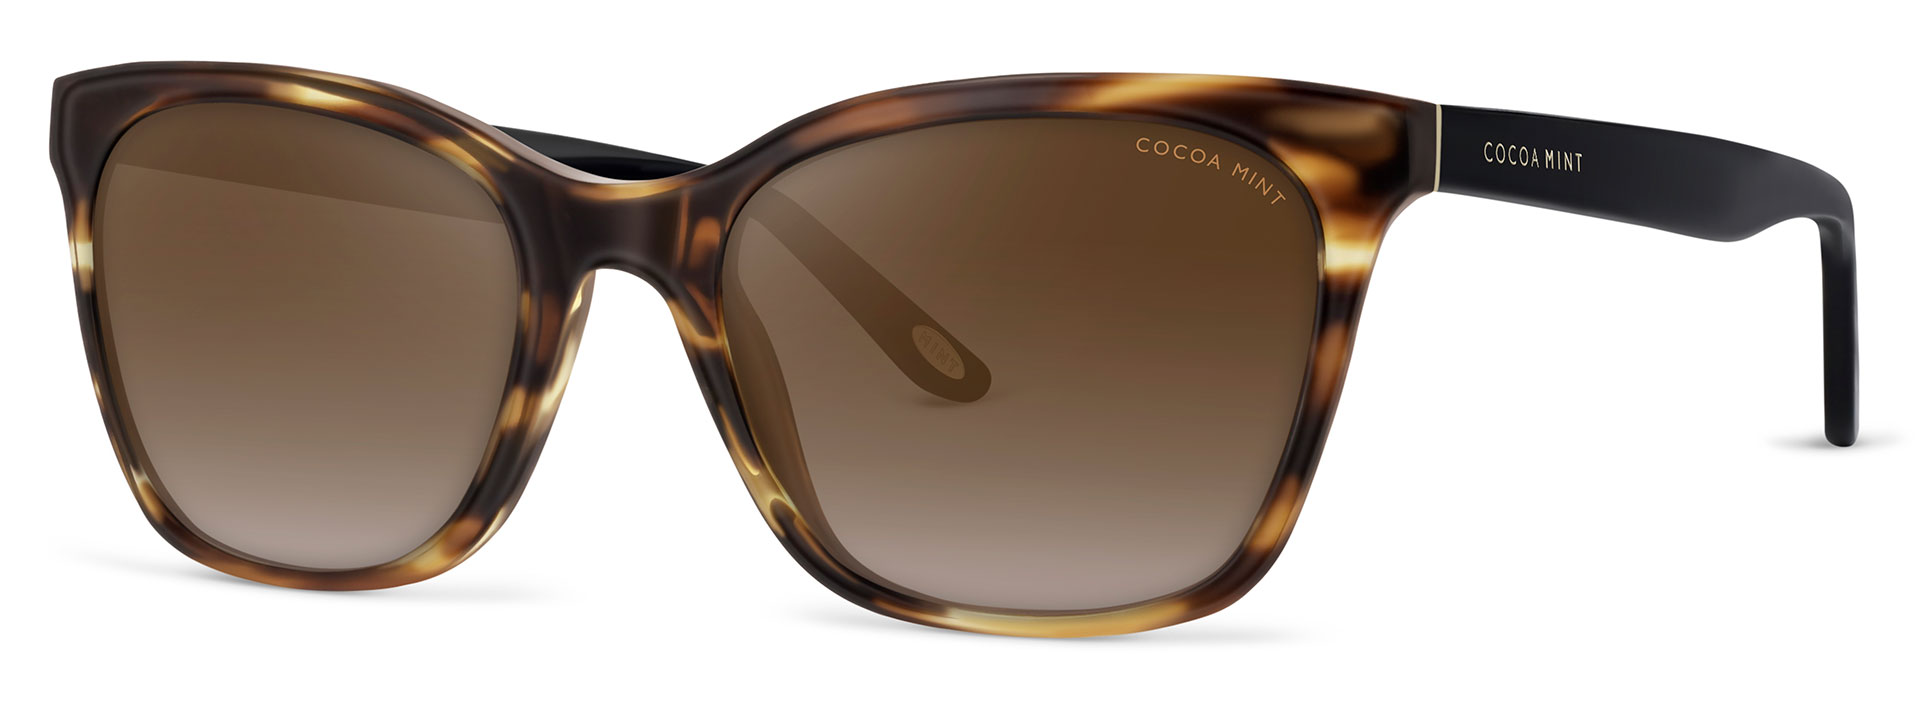 Cocoa Mint Sun Glasses - Havana-Black - CMS2061-C1